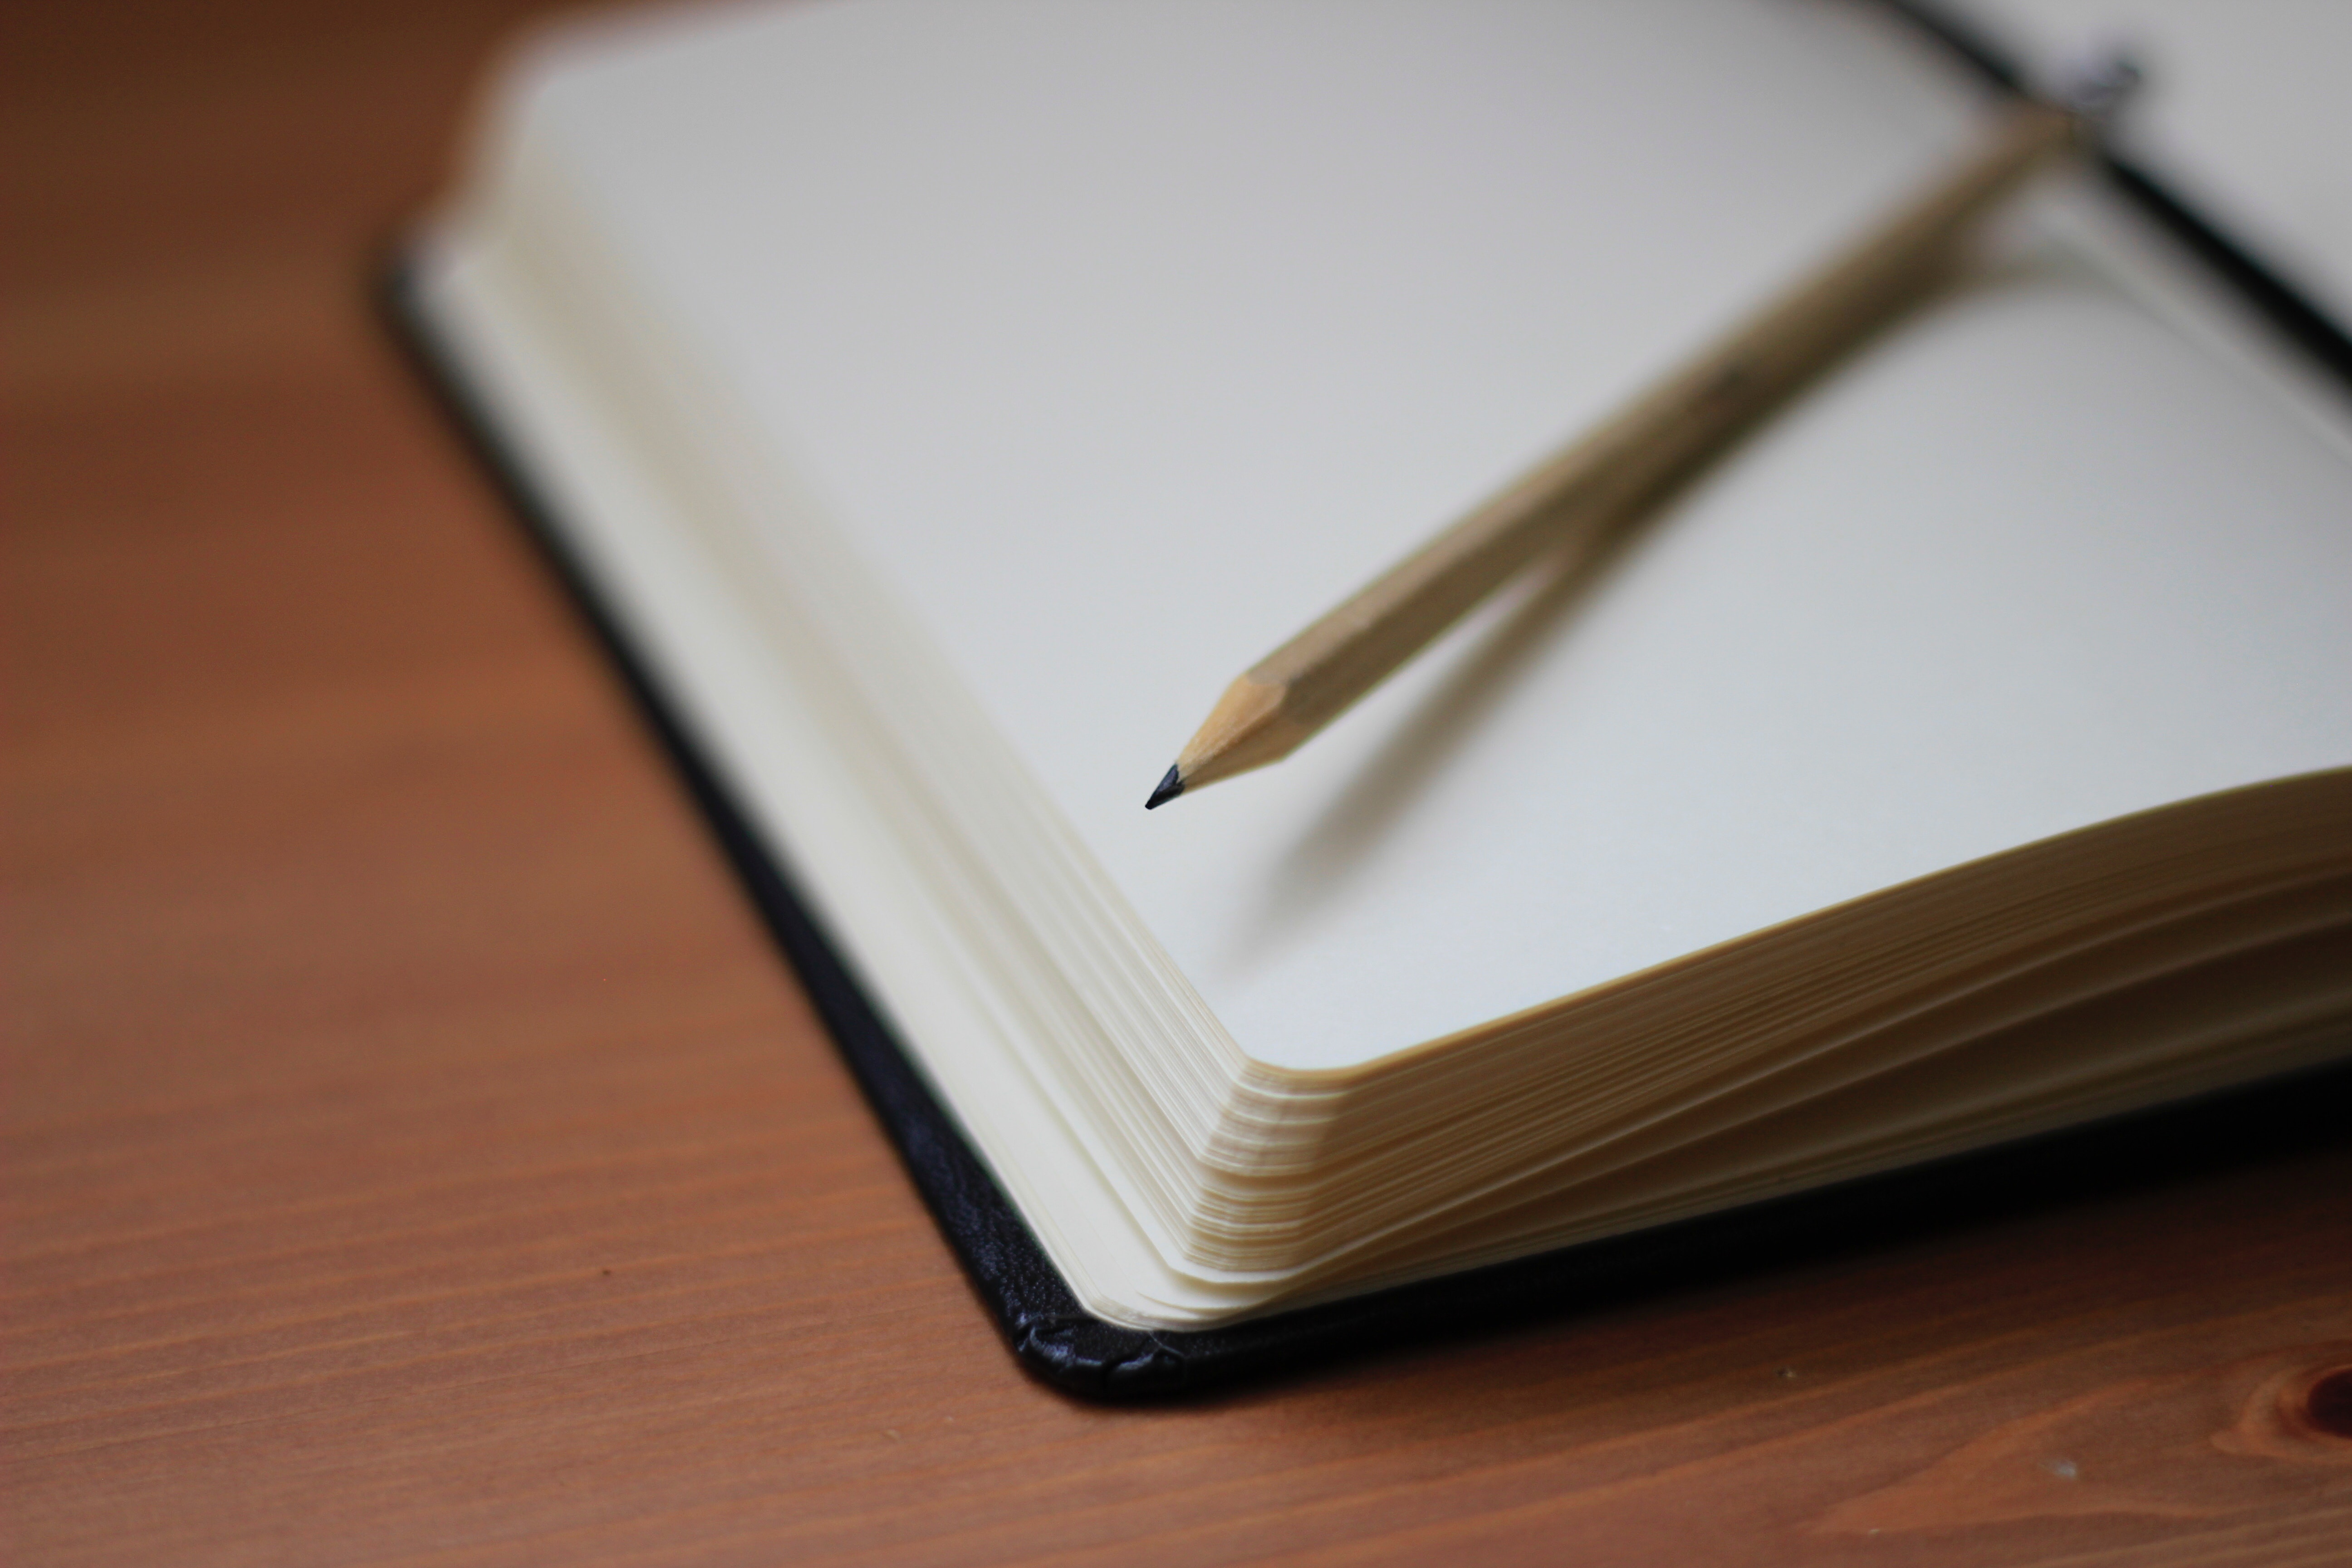 A blank page of an open notebook with a sharpened pencil sitting on top of the page